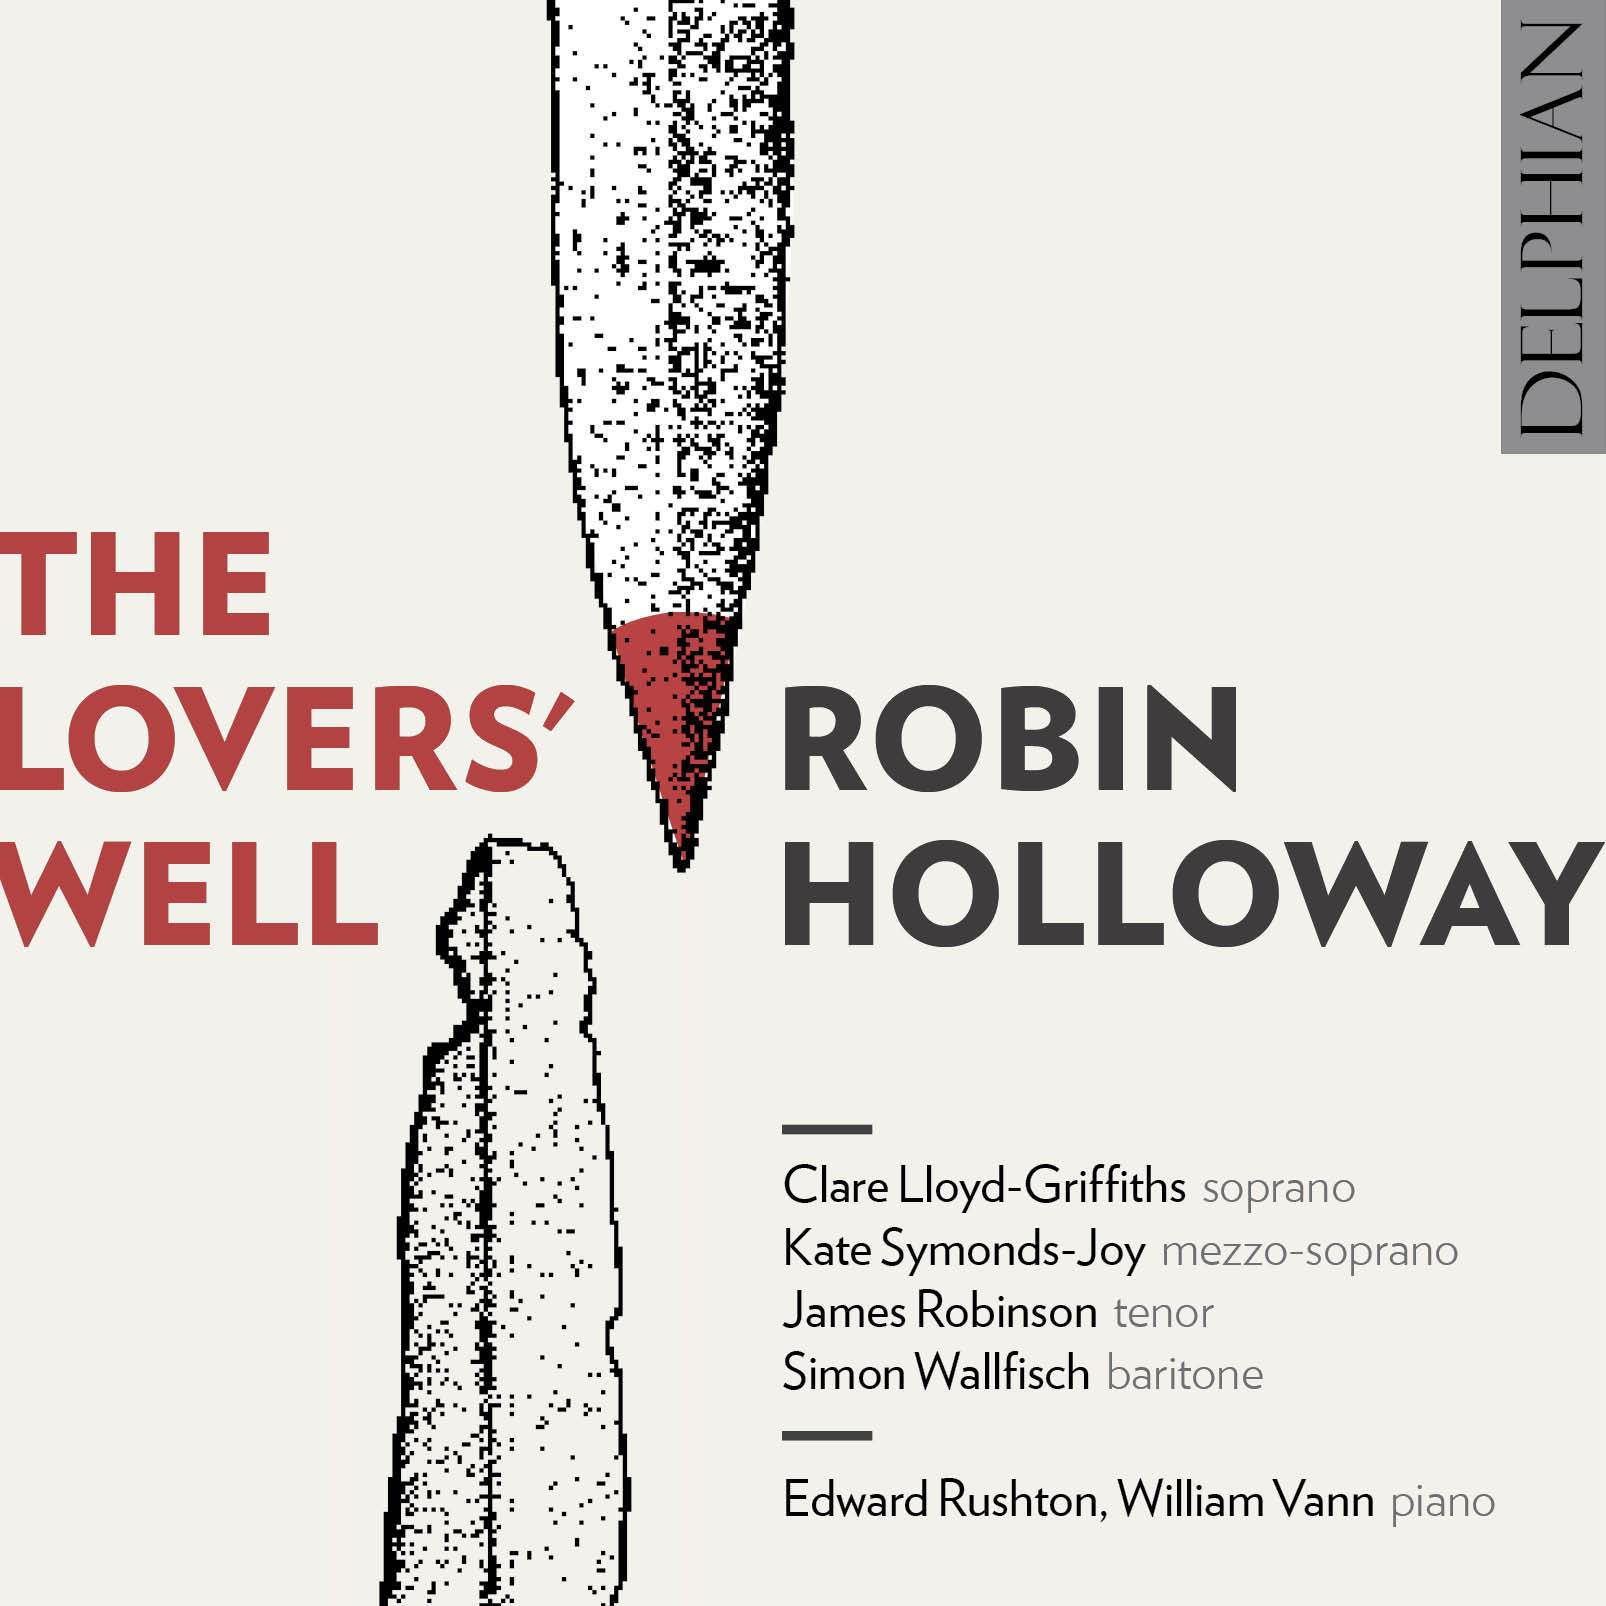 Robin Holloway: The Lovers' Well CD Delphian Records